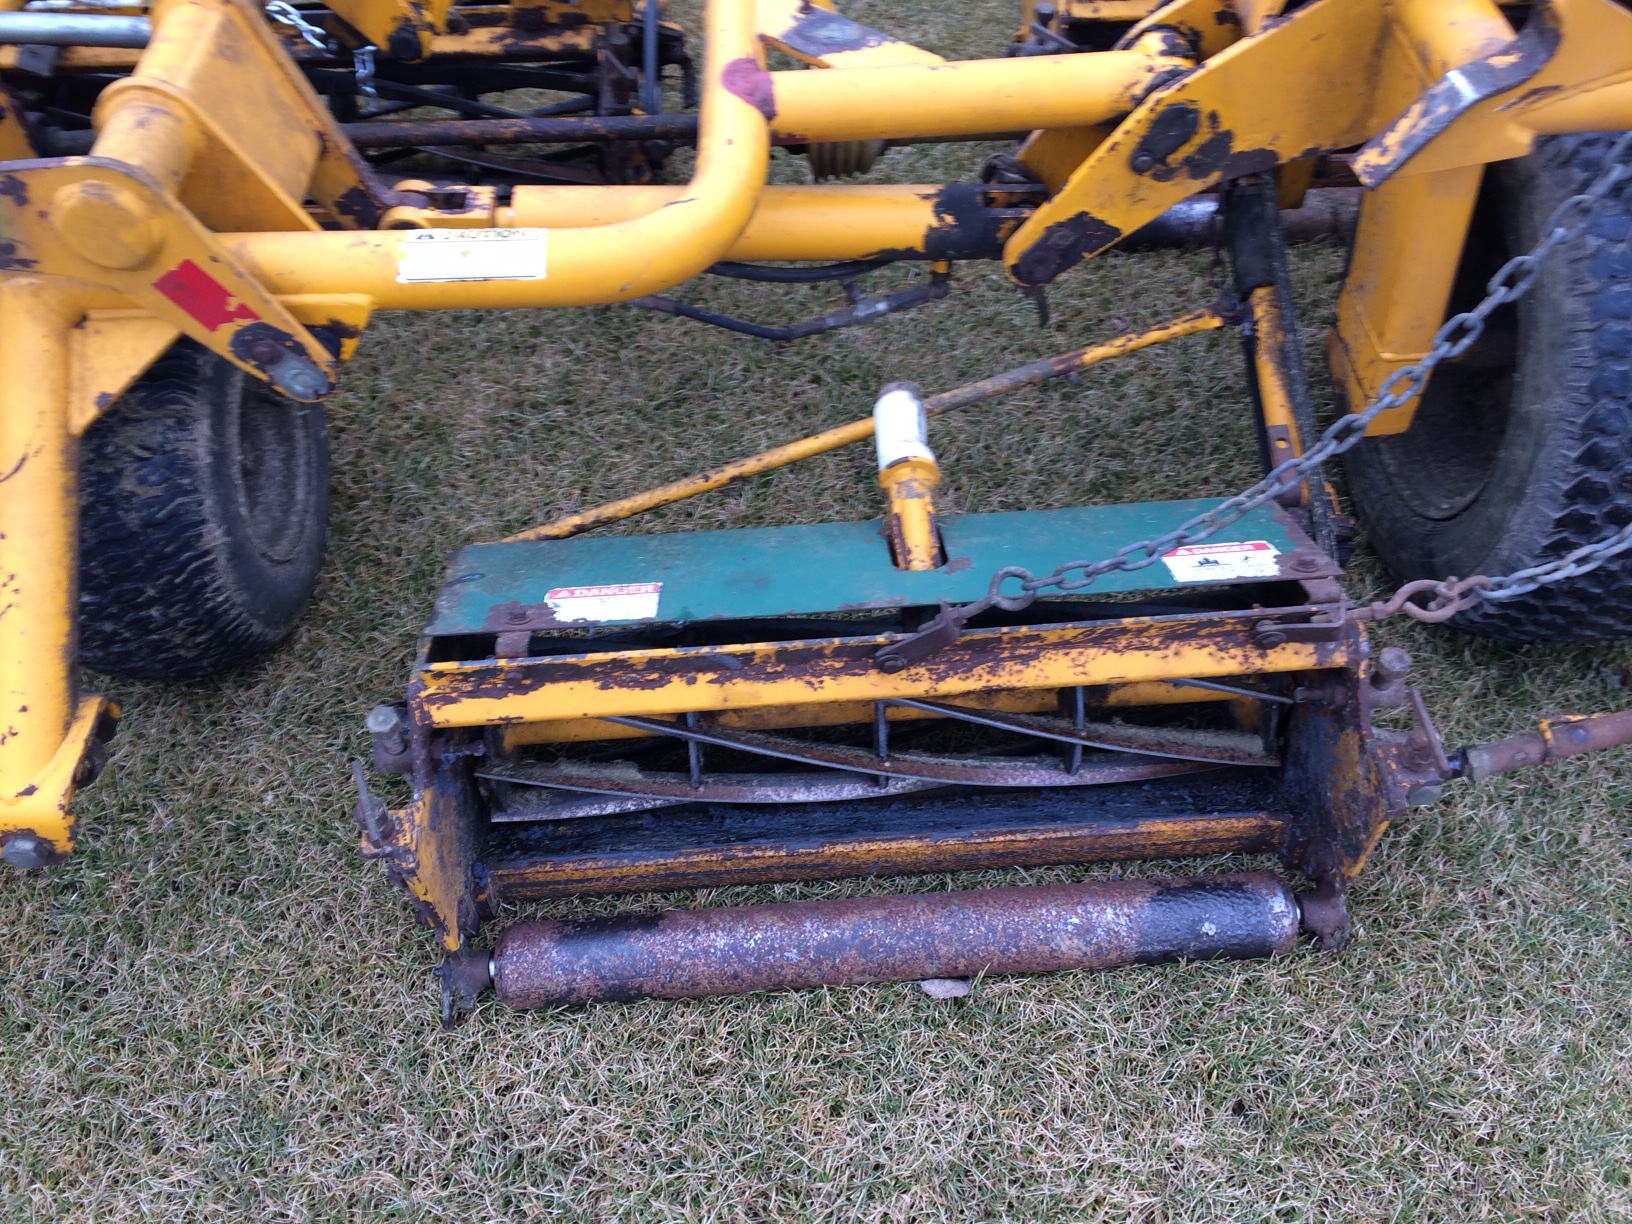 Kesmac 11 gang Mowers for sale